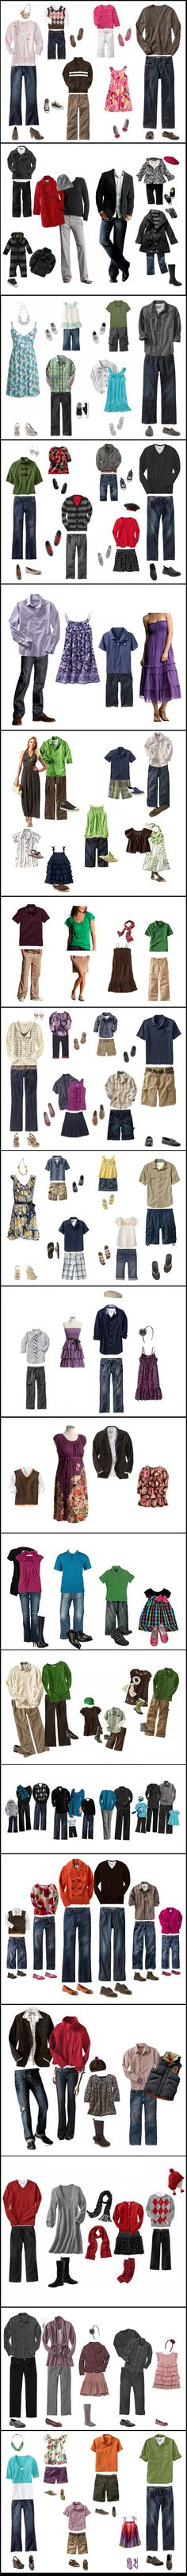 For families - coordinating outfit ideas! For families - coordinating outfit ideas! Family Photo Sessions, Family Posing, Family Portraits, Happy Photography, Family Photography, Photography Tips, Family Photos What To Wear, Family Pictures, Family Picture Outfits